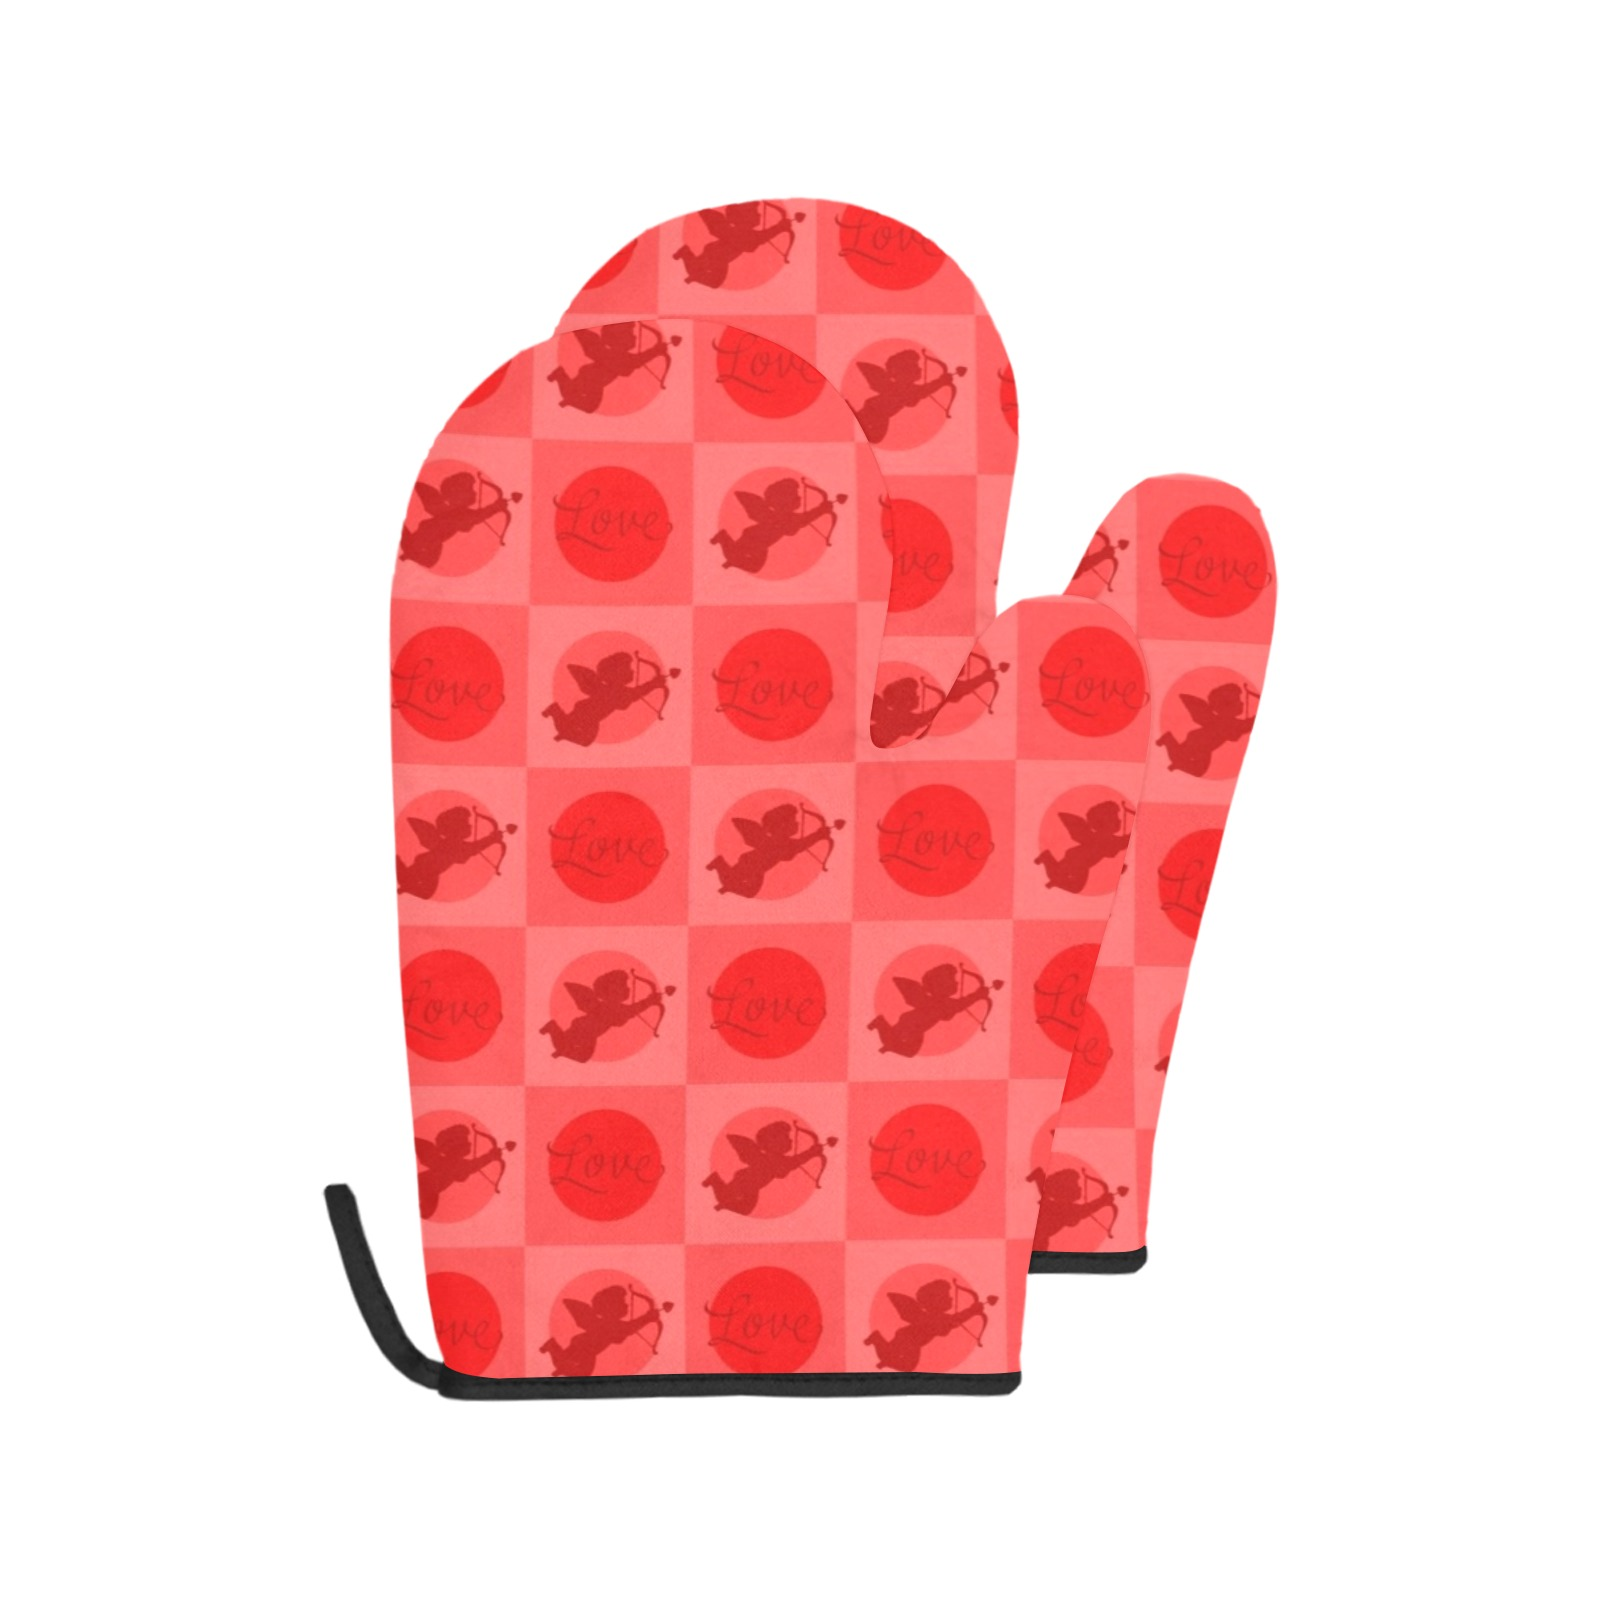 Cupid Oven Mitts Oven Mitt (Two Pieces)